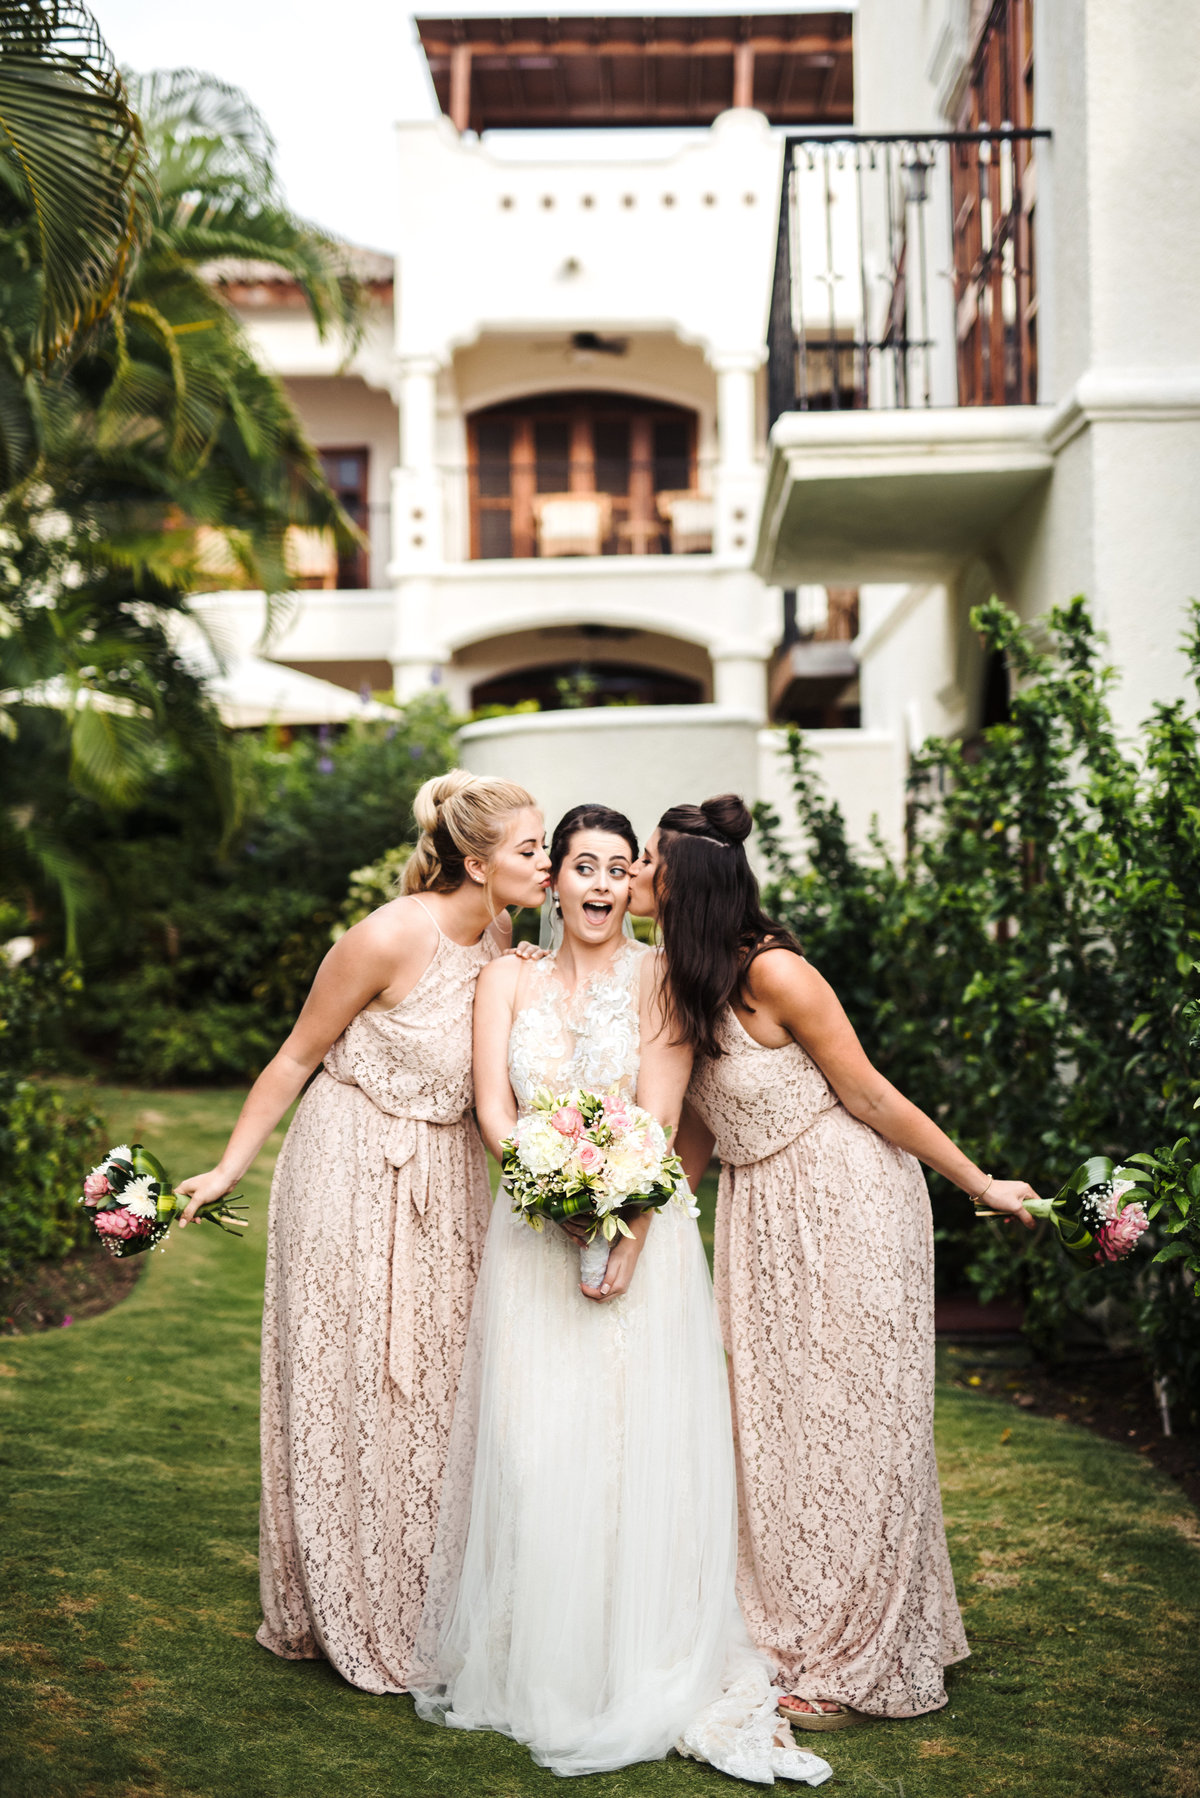 Cap Maison St Lucia Destination Wedding - 176